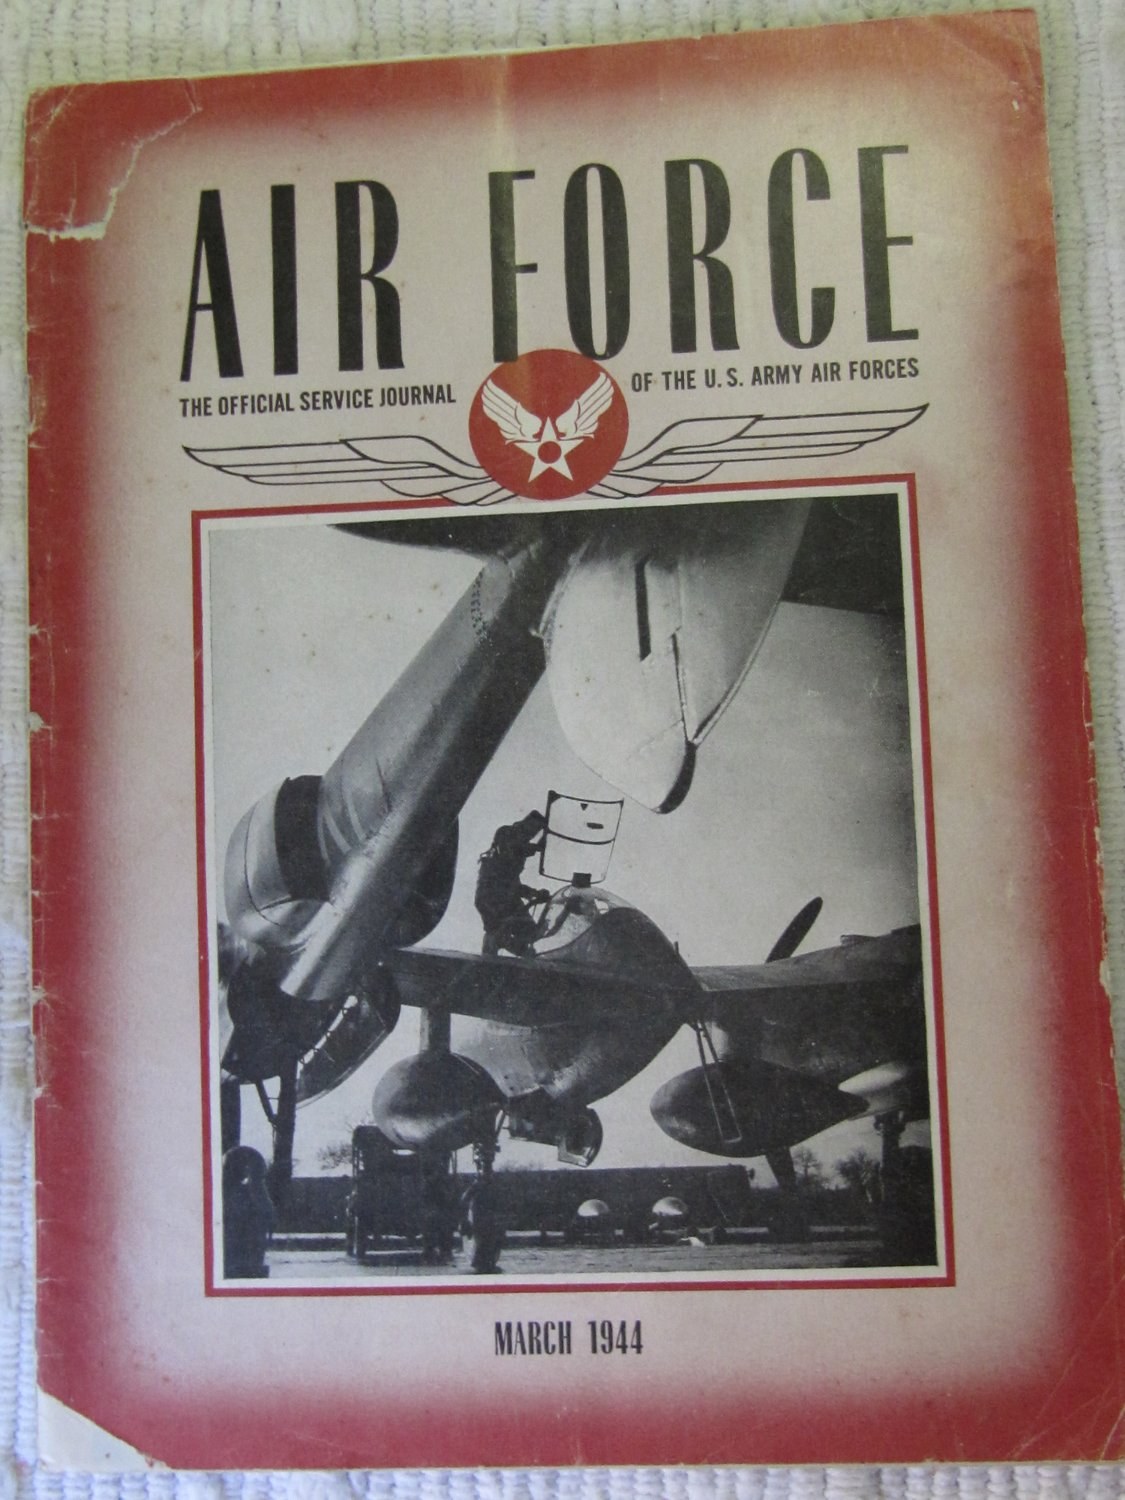 Air Force Official Service Journal U.S. Army Air Forces Vol. 27 No. 3 Magazine March 1944 Issue